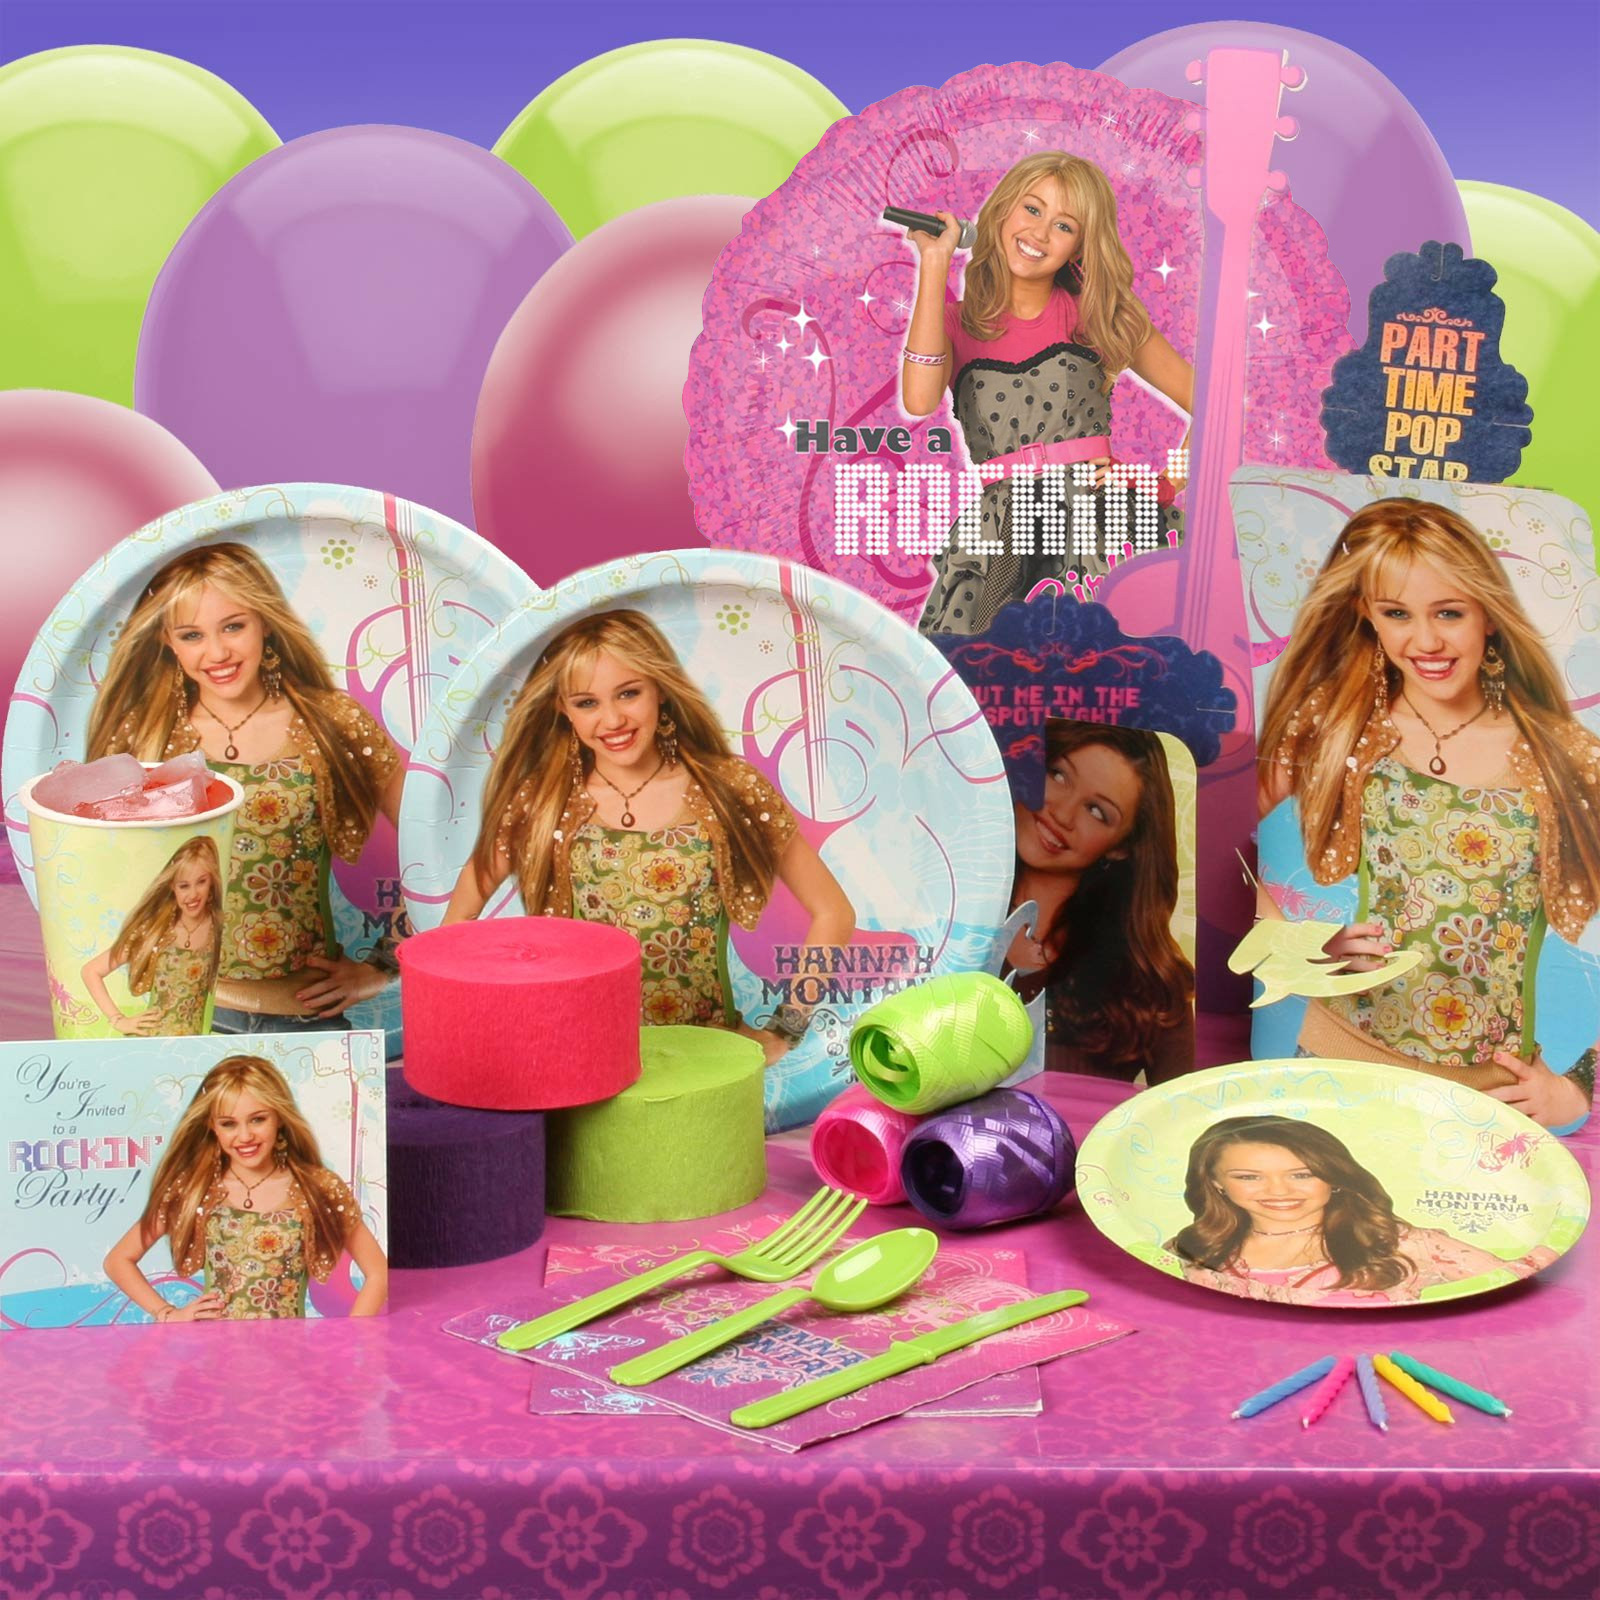 Hannah Montana cool stuff - Disney and Ashley rock